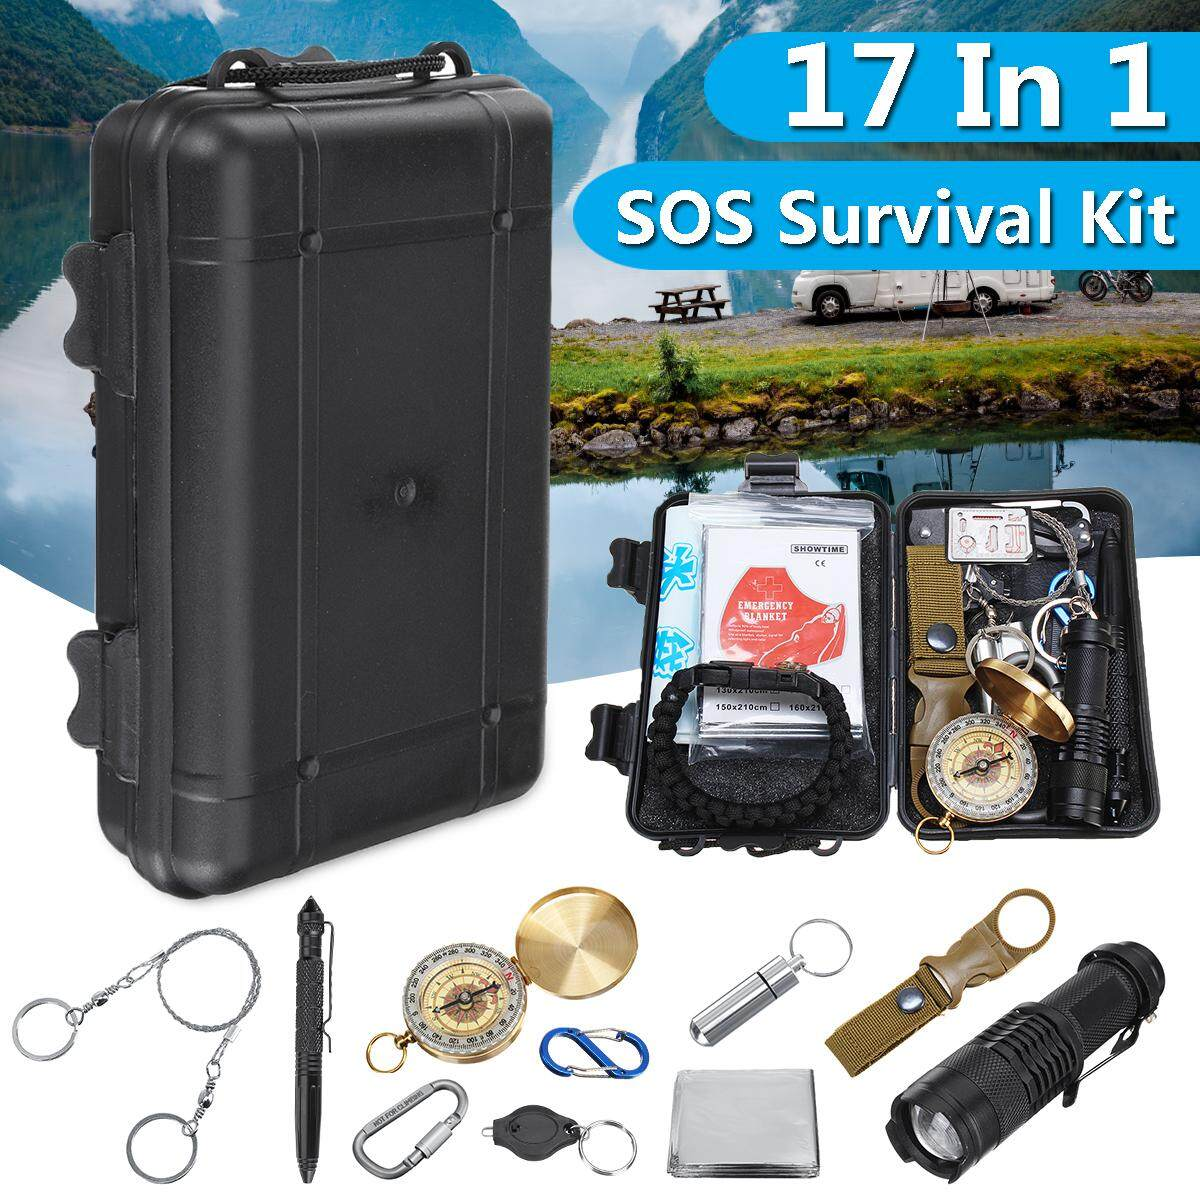 17 In 1 Sos Emergency Camping Hiking Survival Equipment Kit Gear Tactical Tool By Freebang.